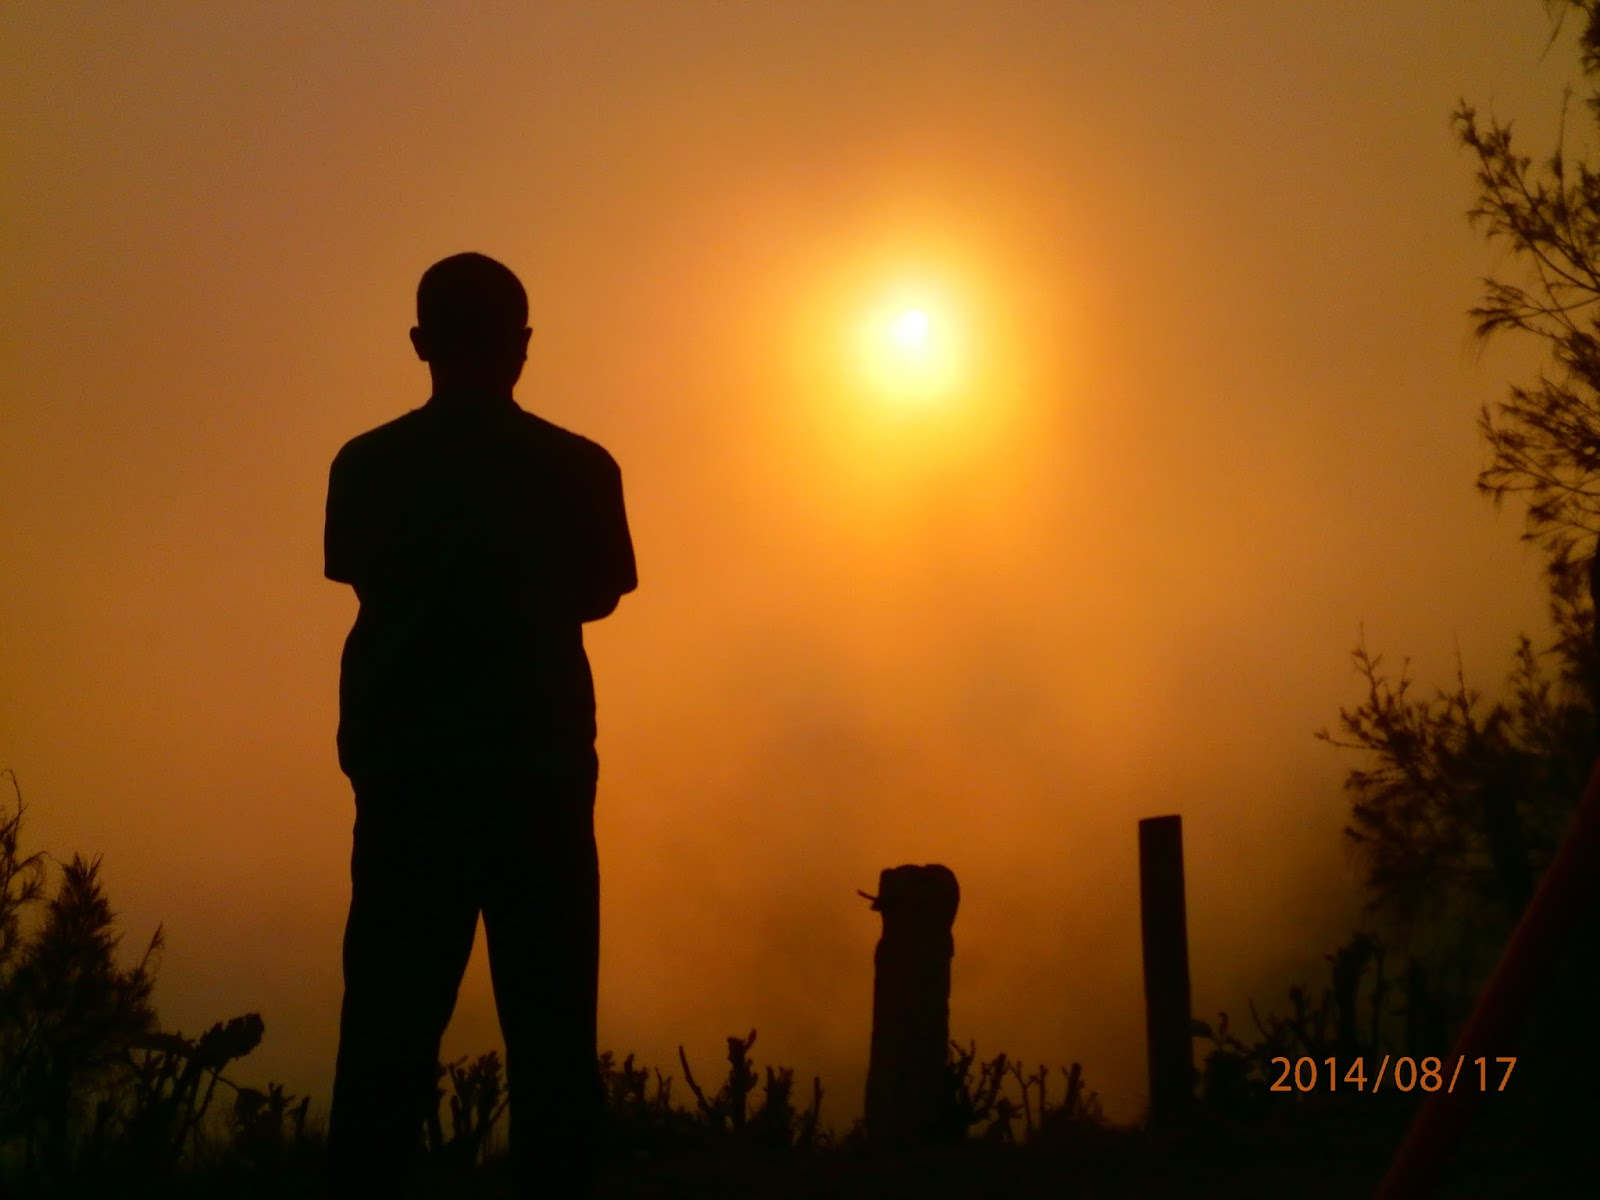 Yojalan Jalandab Bromo Tips And Adv Sunset Full Destination The Golden In Lava View Cottage Or Permai Areas Cemoro Lawang Area